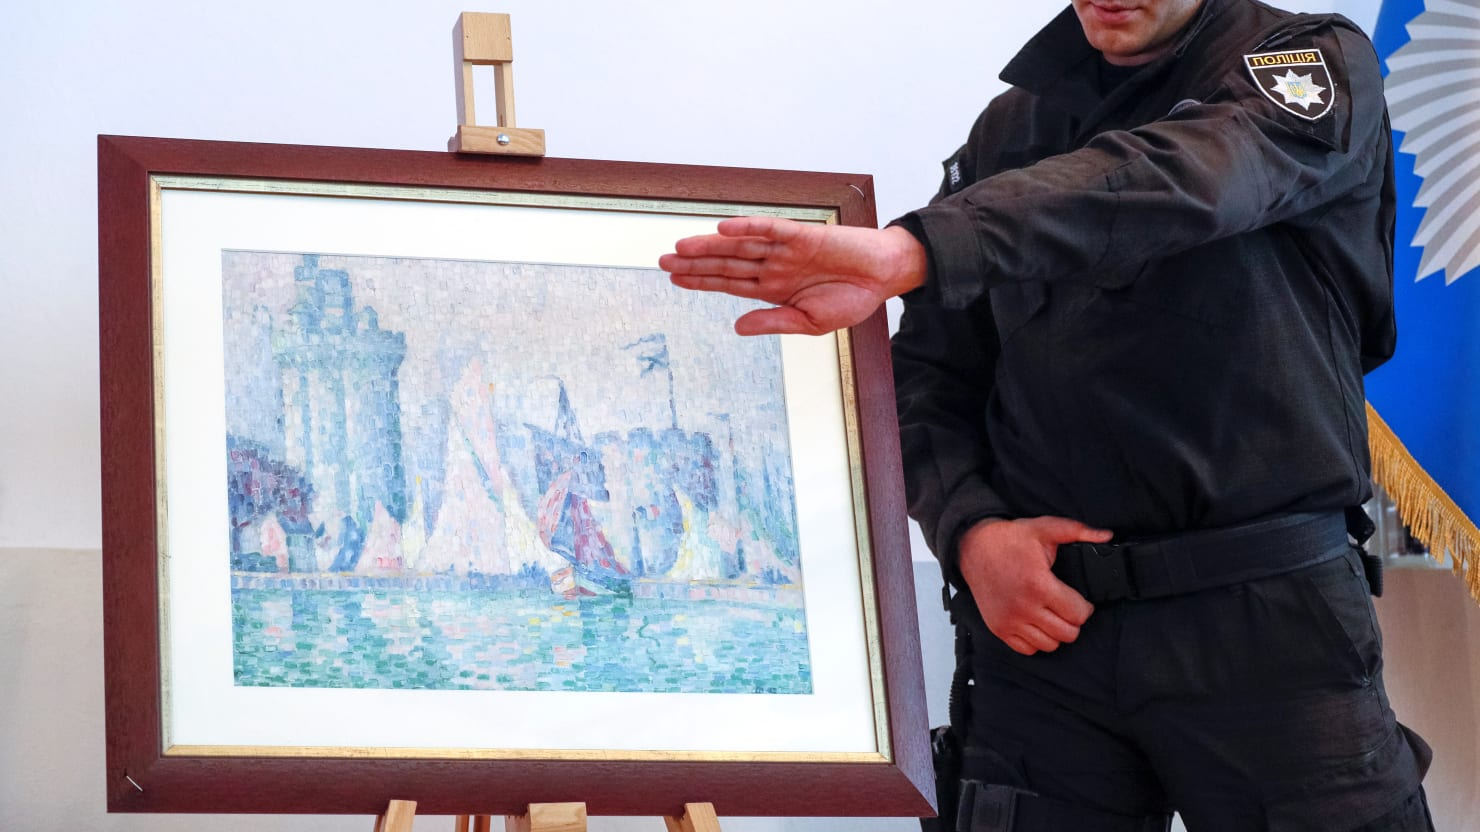 Stolen Painting by Impressionist Master Paul Signac Recovered in Ukraine